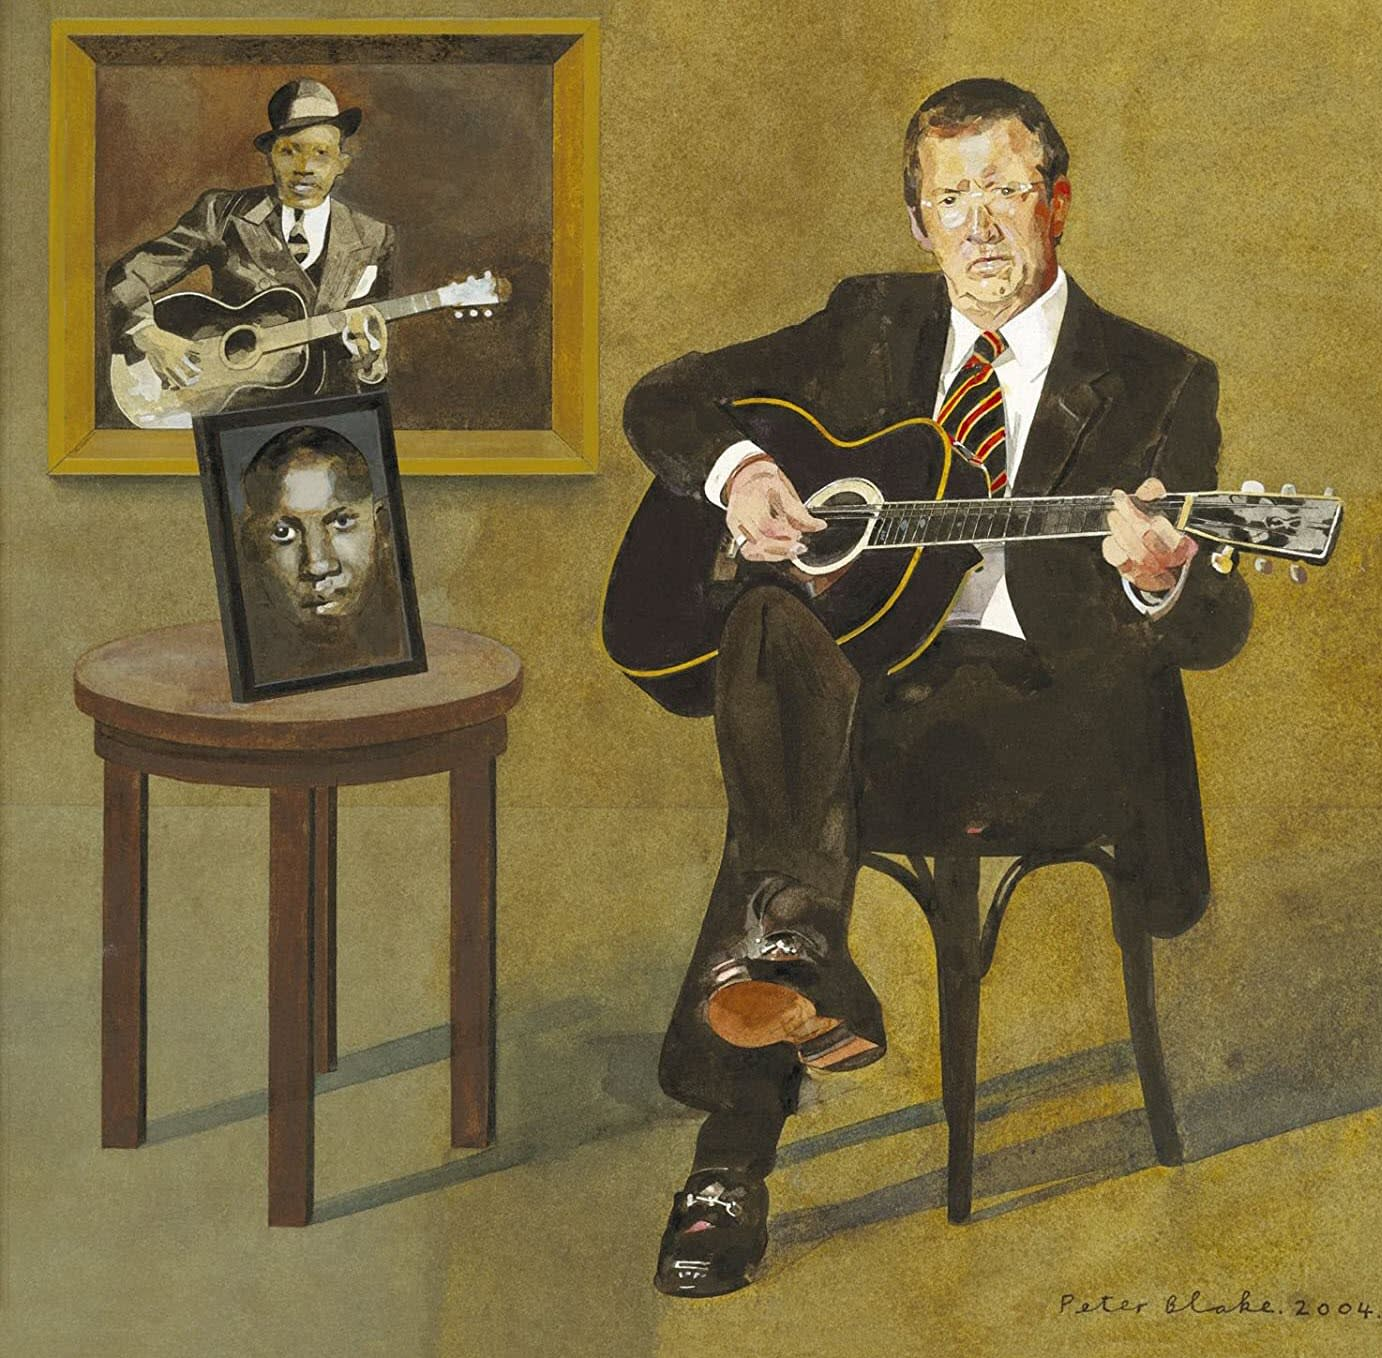 Me and Mr Johnson album cover by Eric Clapton